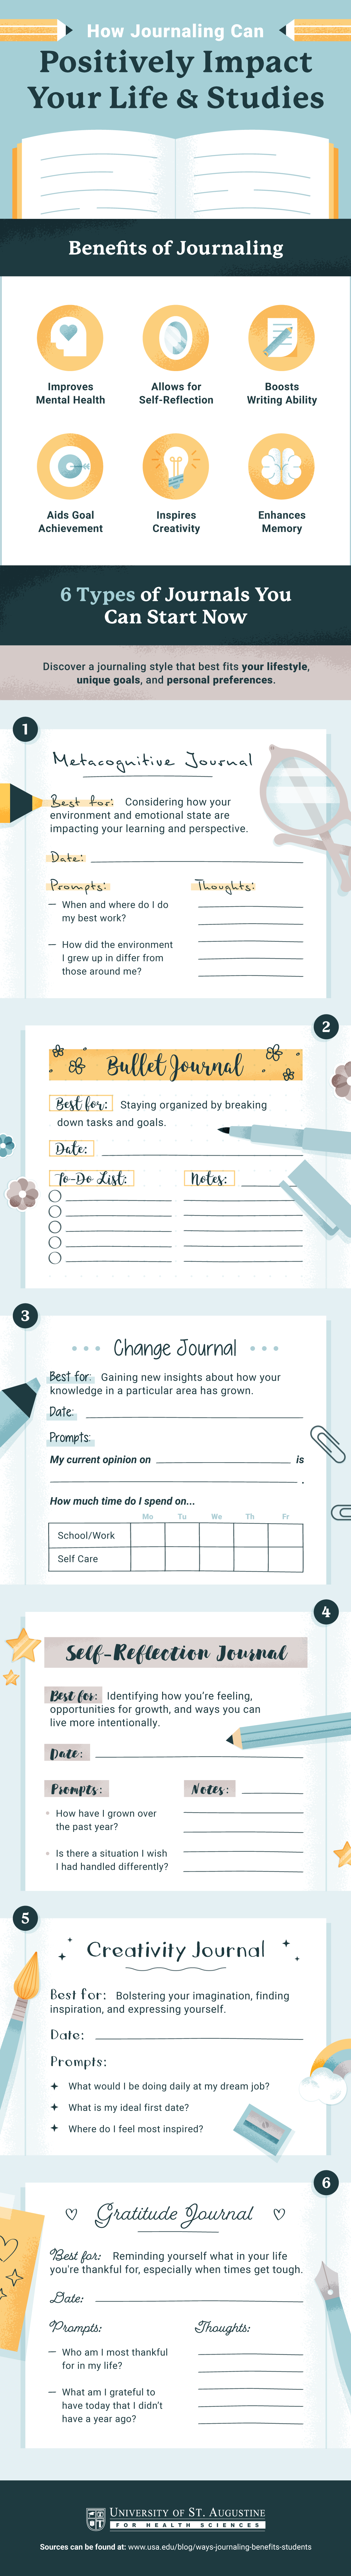 Infographic: Journaling as a Self-Care Practice